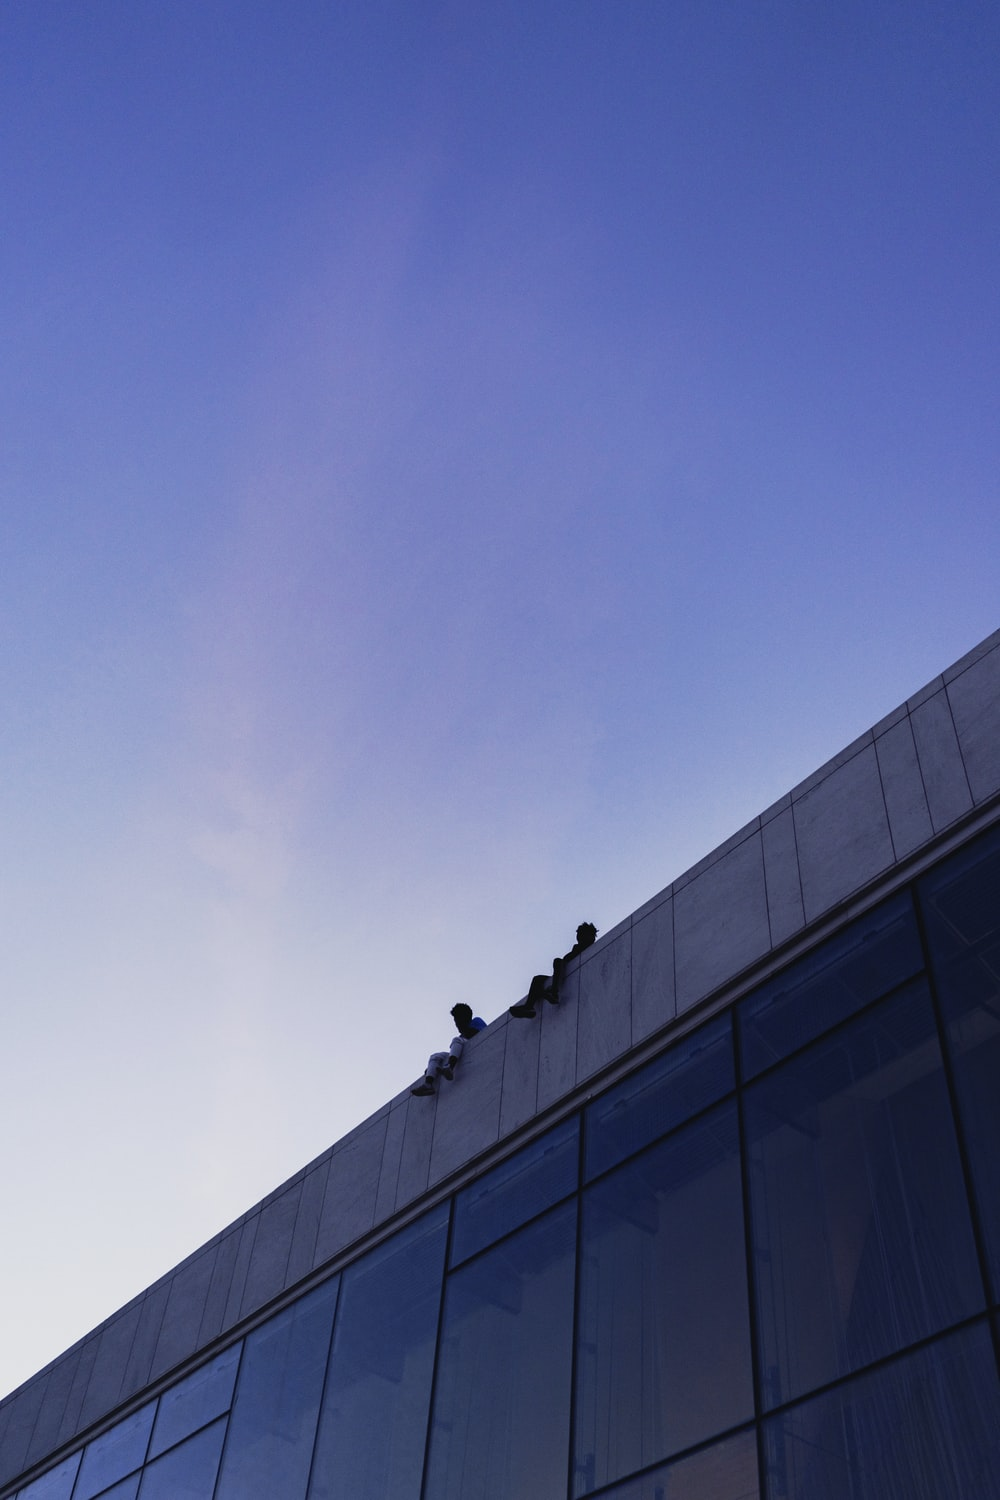 architectural photography of blue and gray building